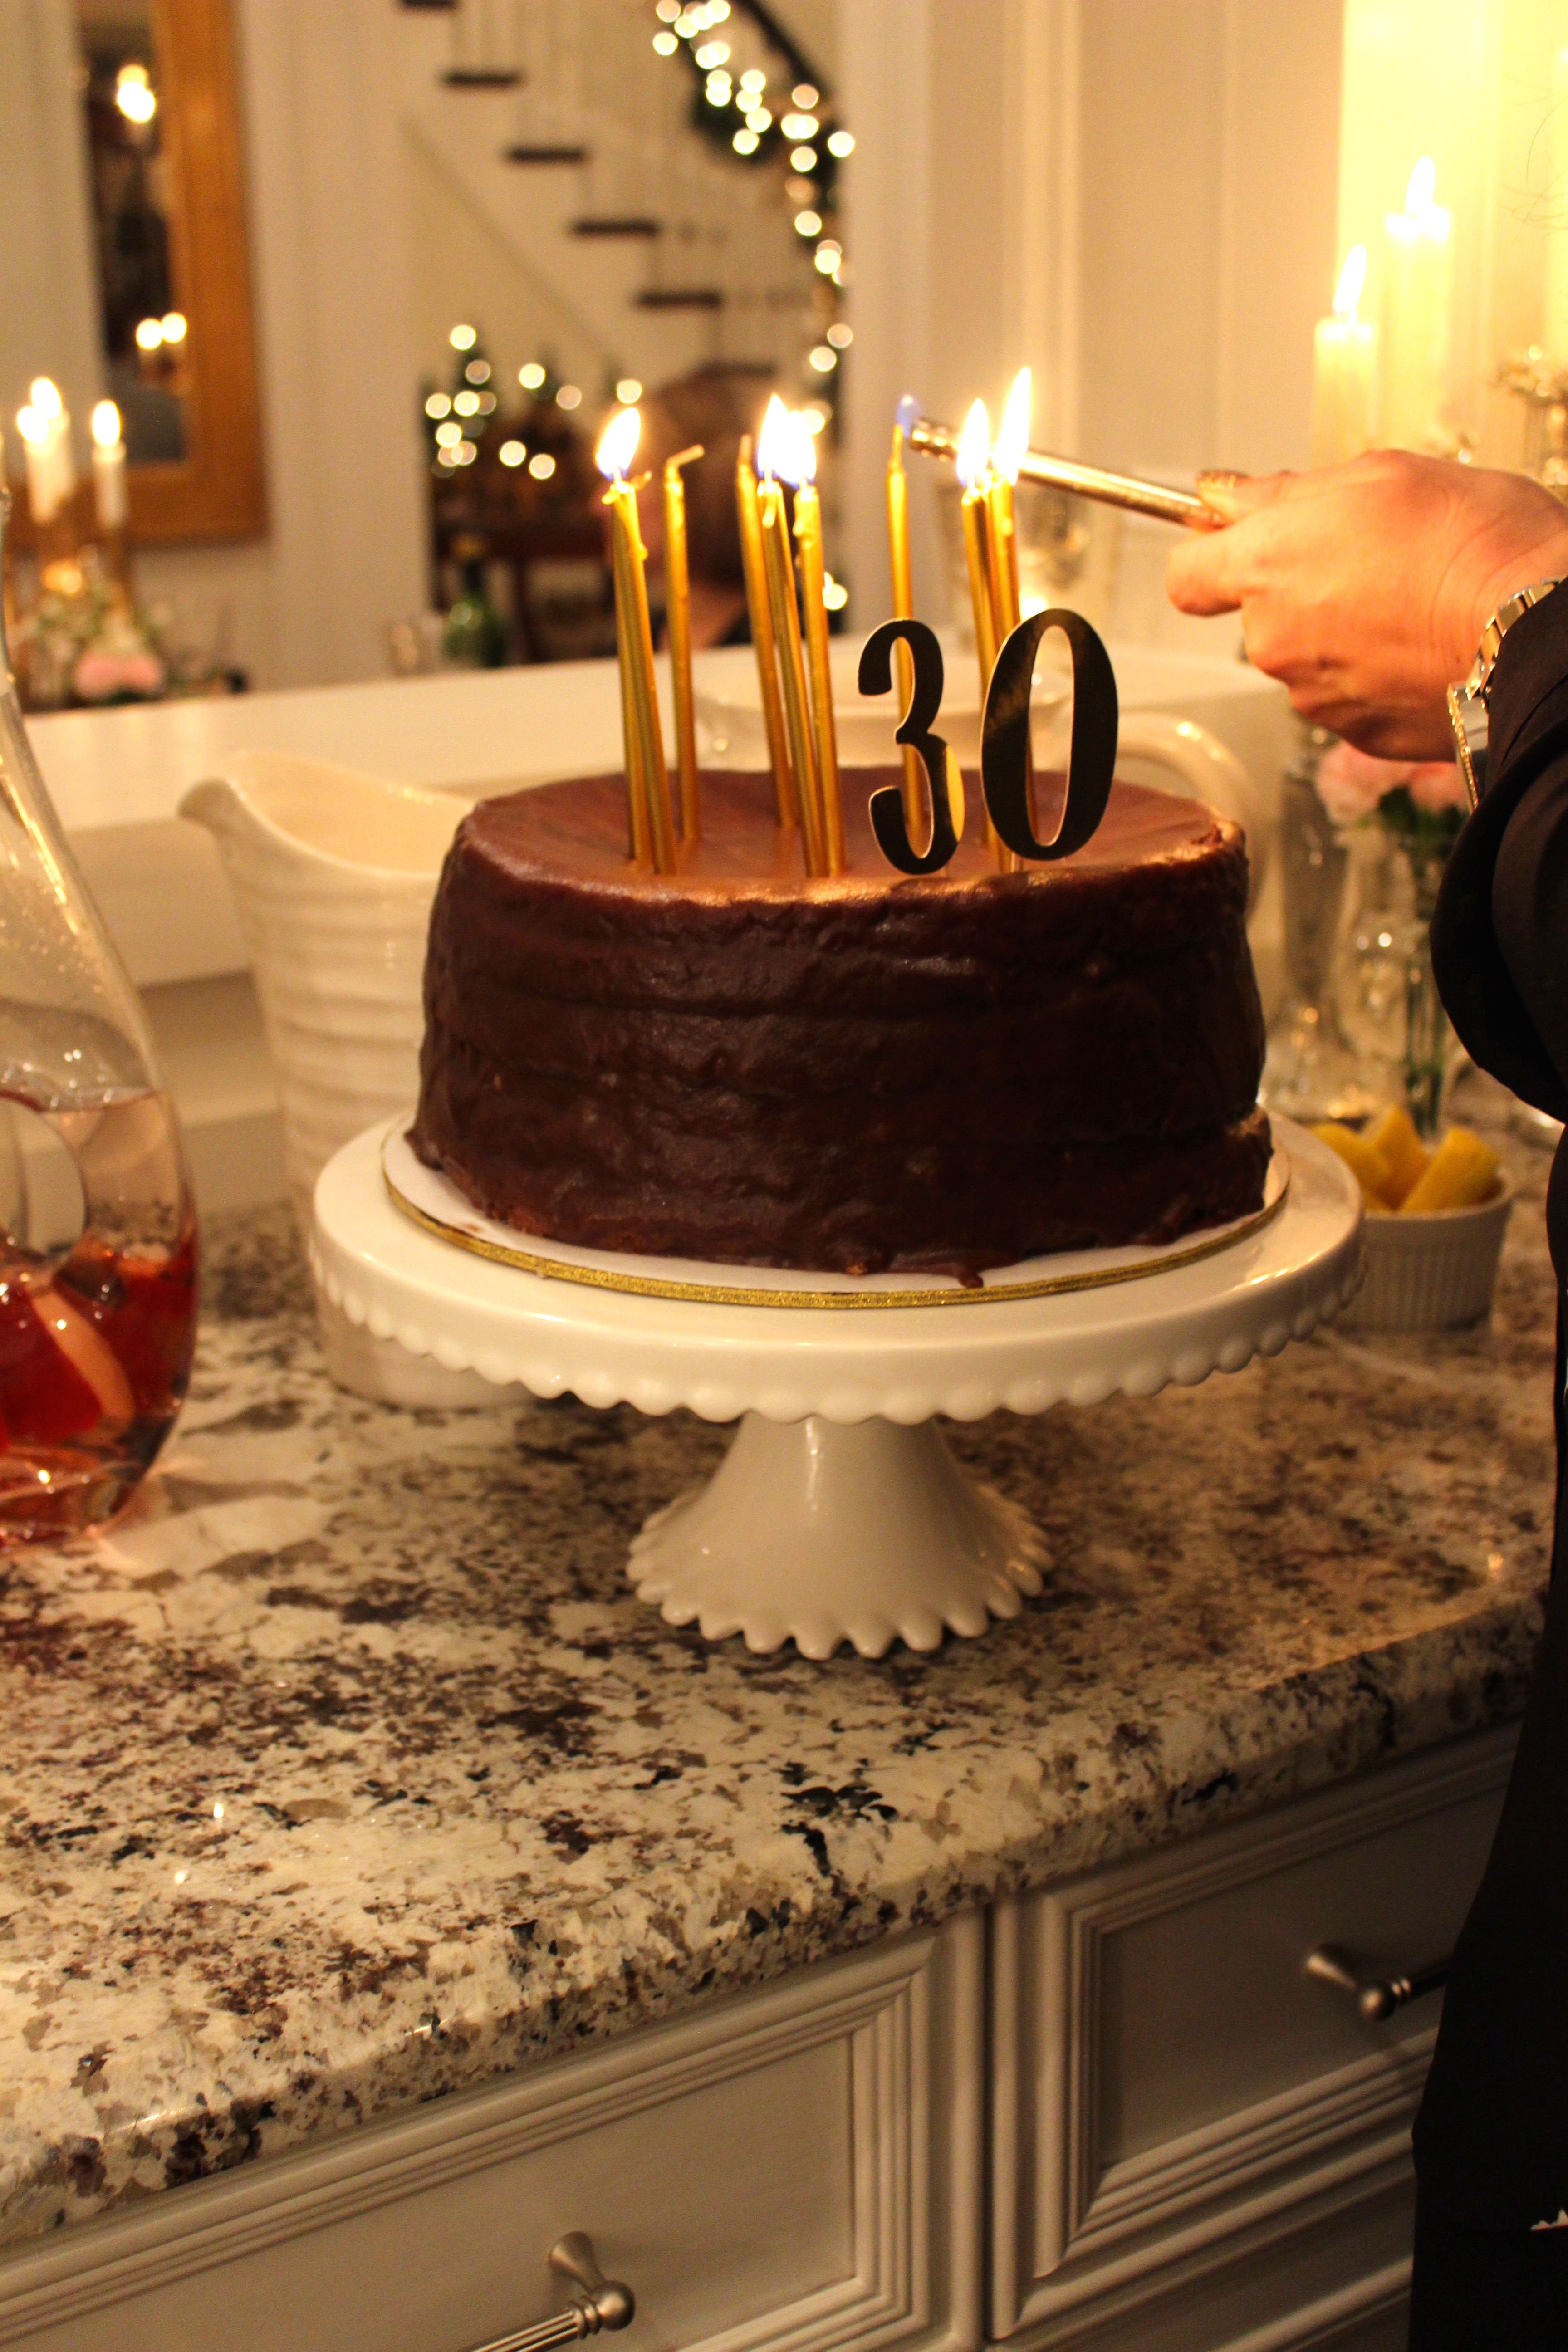 Gluten Free Chocolate Birthday Cake With A Gold 30 Topper And Candles